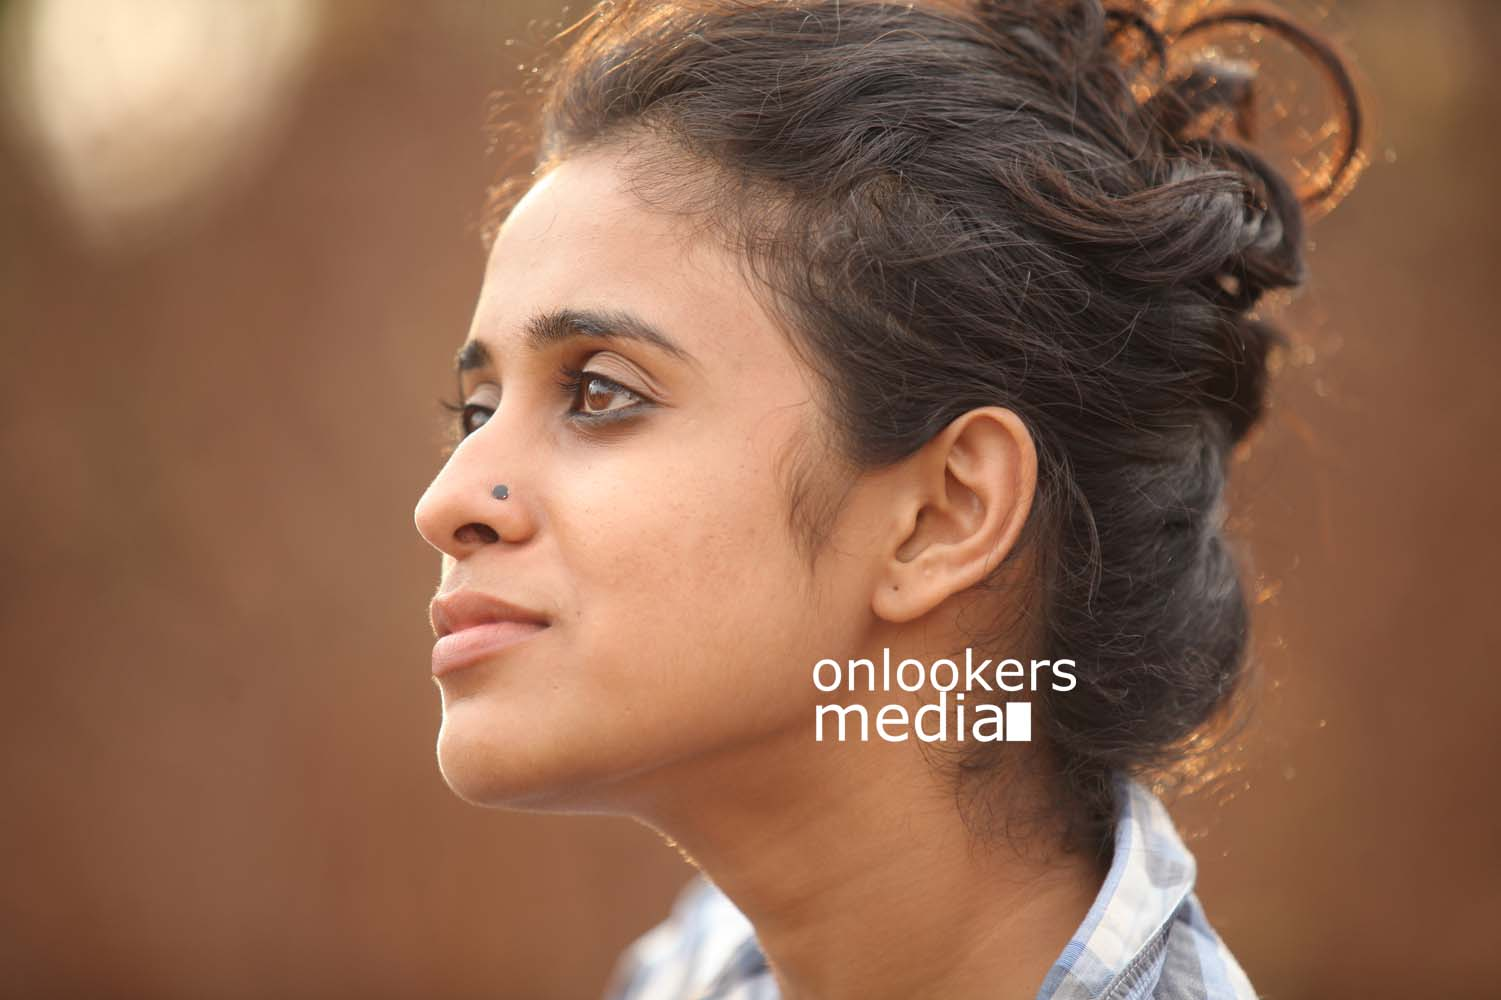 http://onlookersmedia.in/wp-content/uploads/2016/10/Annu-Antony-Devika-in-Aanandam-Malayalam-movie.jpg